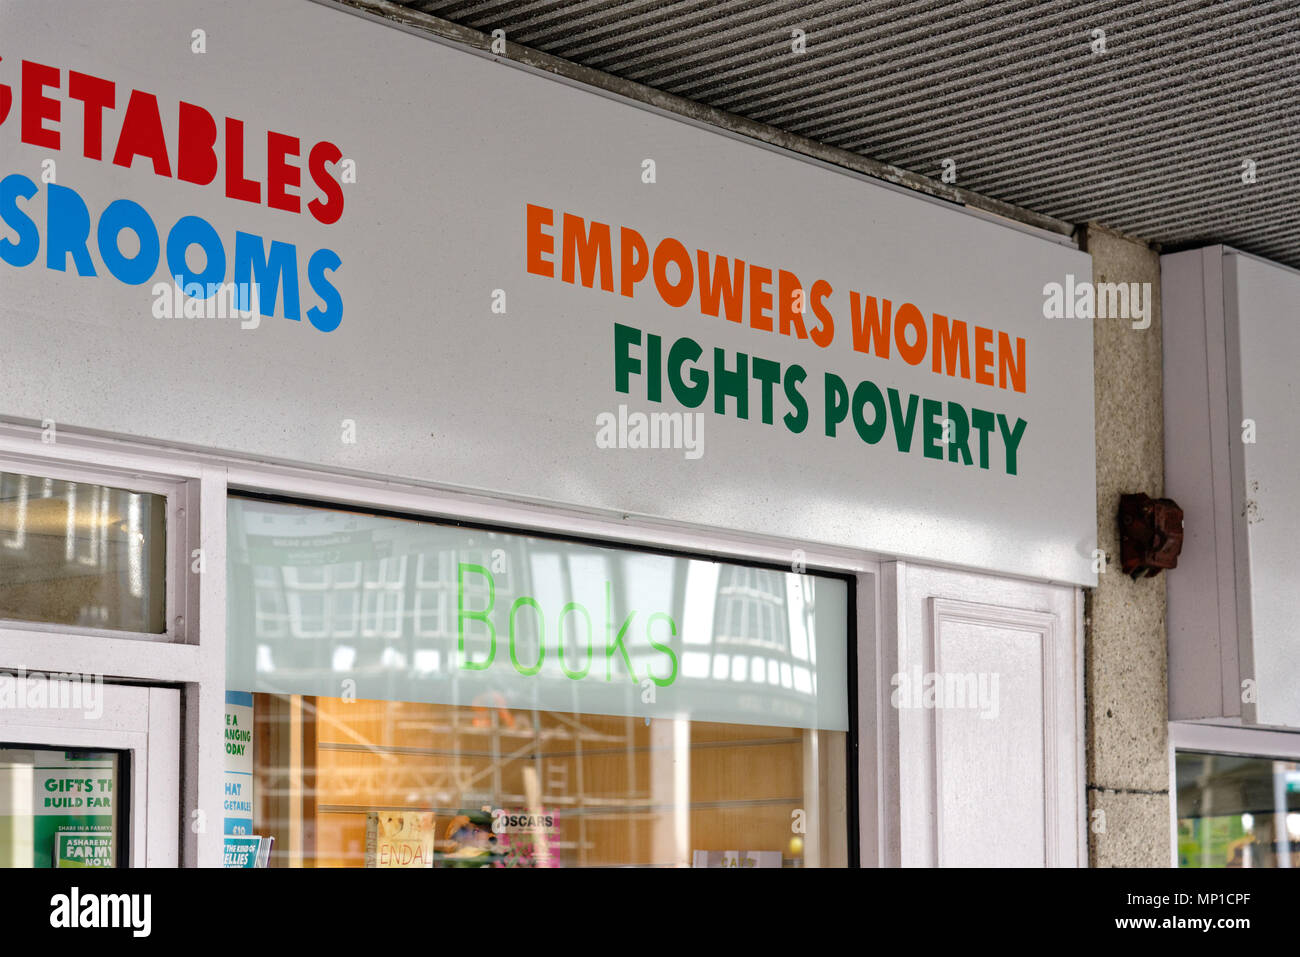 Oxfam shop front, with the slogans 'Empowers Women', 'Fights Poverty' - Stock Image